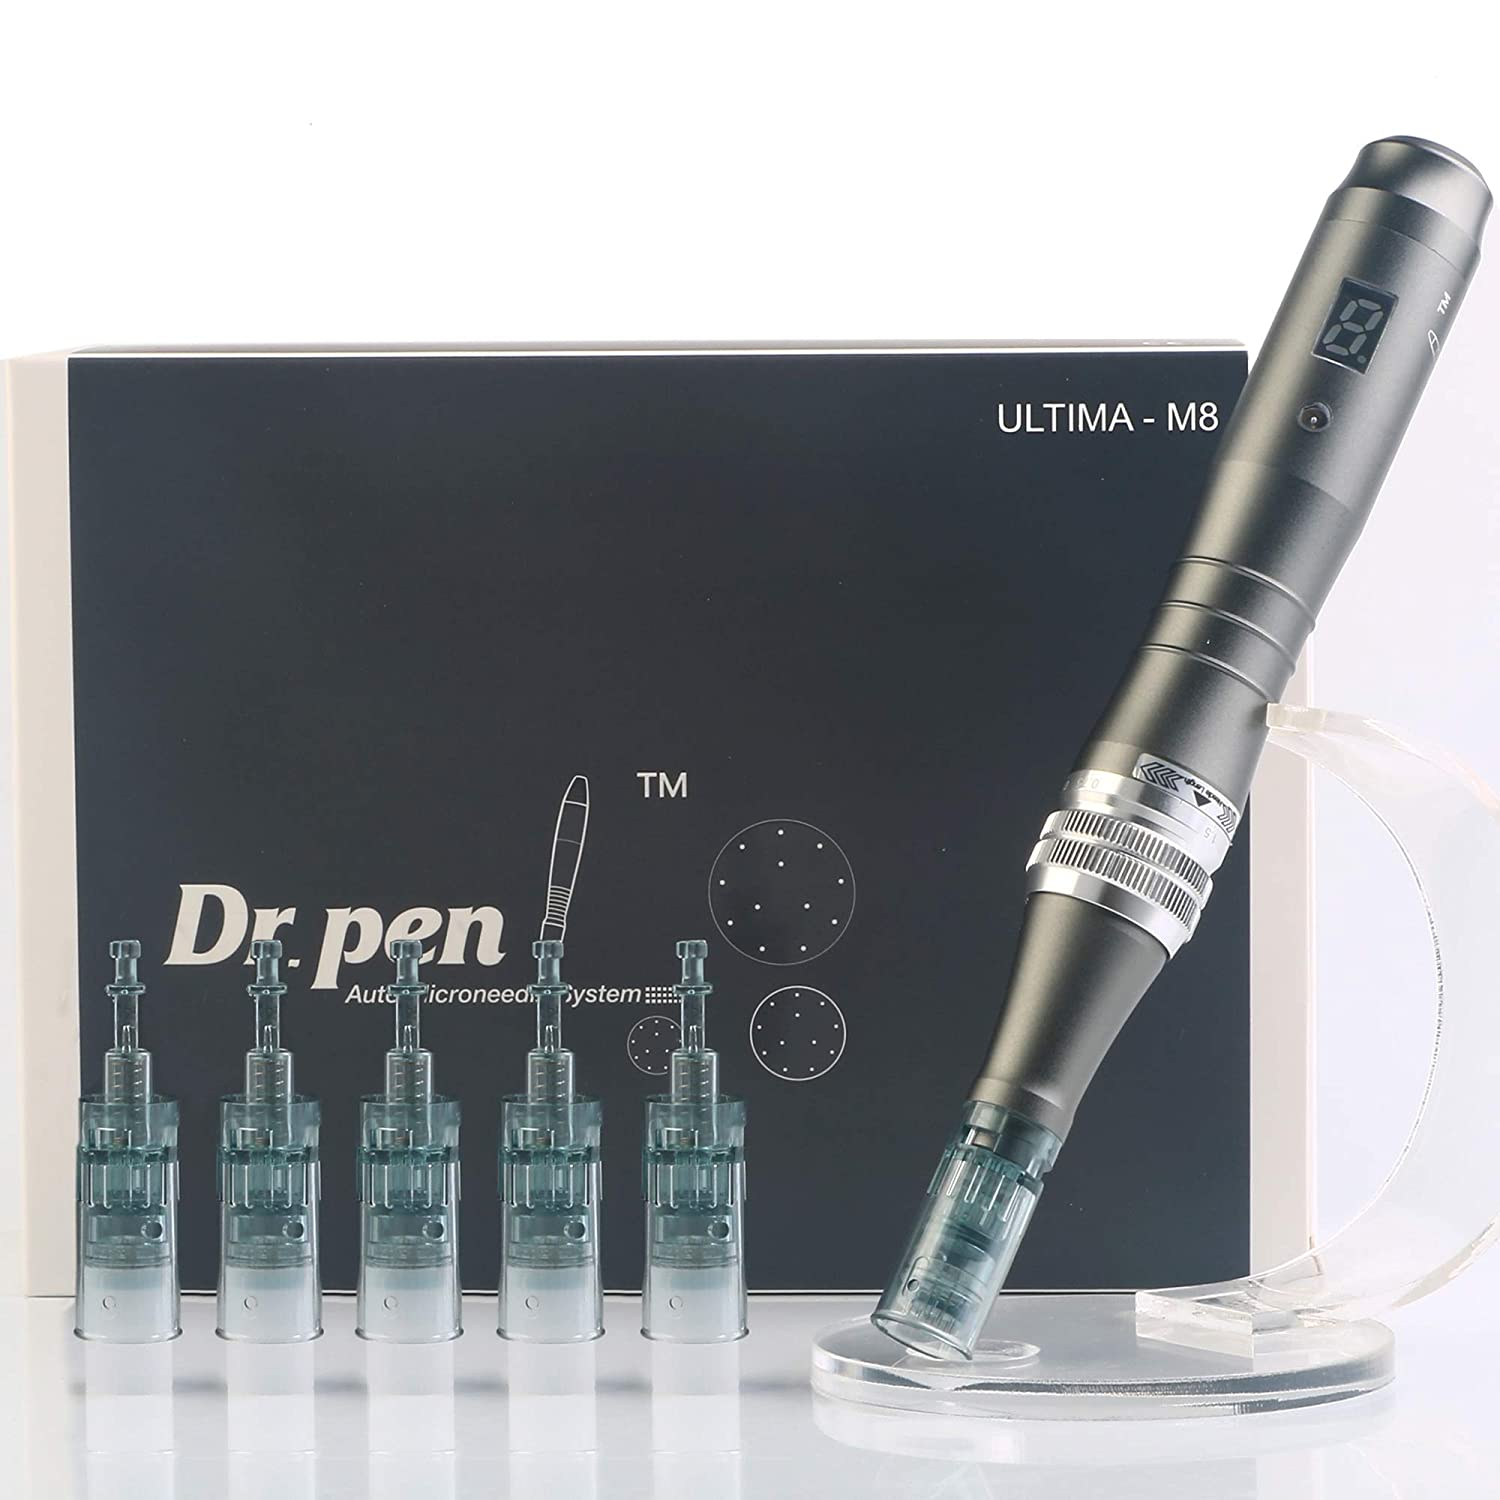 Dr. Pen Ultima M8 Professional Microneedling Pen - Electric Derma Auto Pen - Best Skin Care Tool Kit for Face and Body - 16 pins x2 + 36 pins x3 Cartridges: Beauty